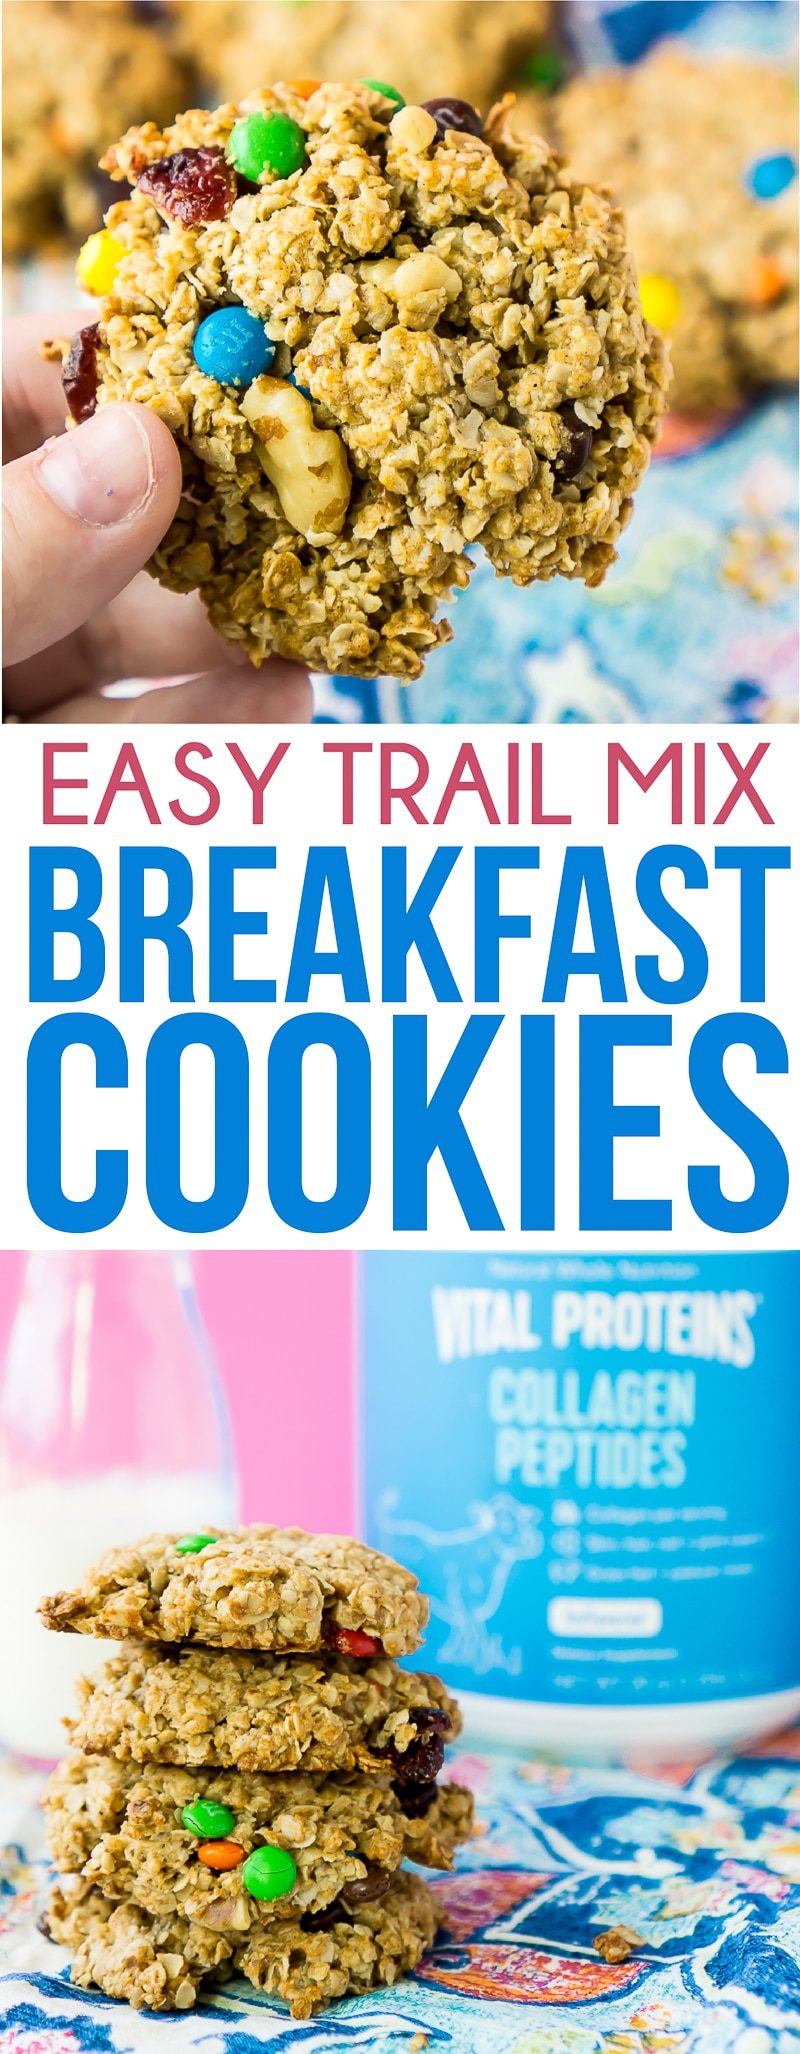 These breakfast cookies are the perfect protein packed and healthy breakfast for kids! They're easy to make and use the flavors of trail mix in one delicious breakfast cookie that both adults and kids will love!